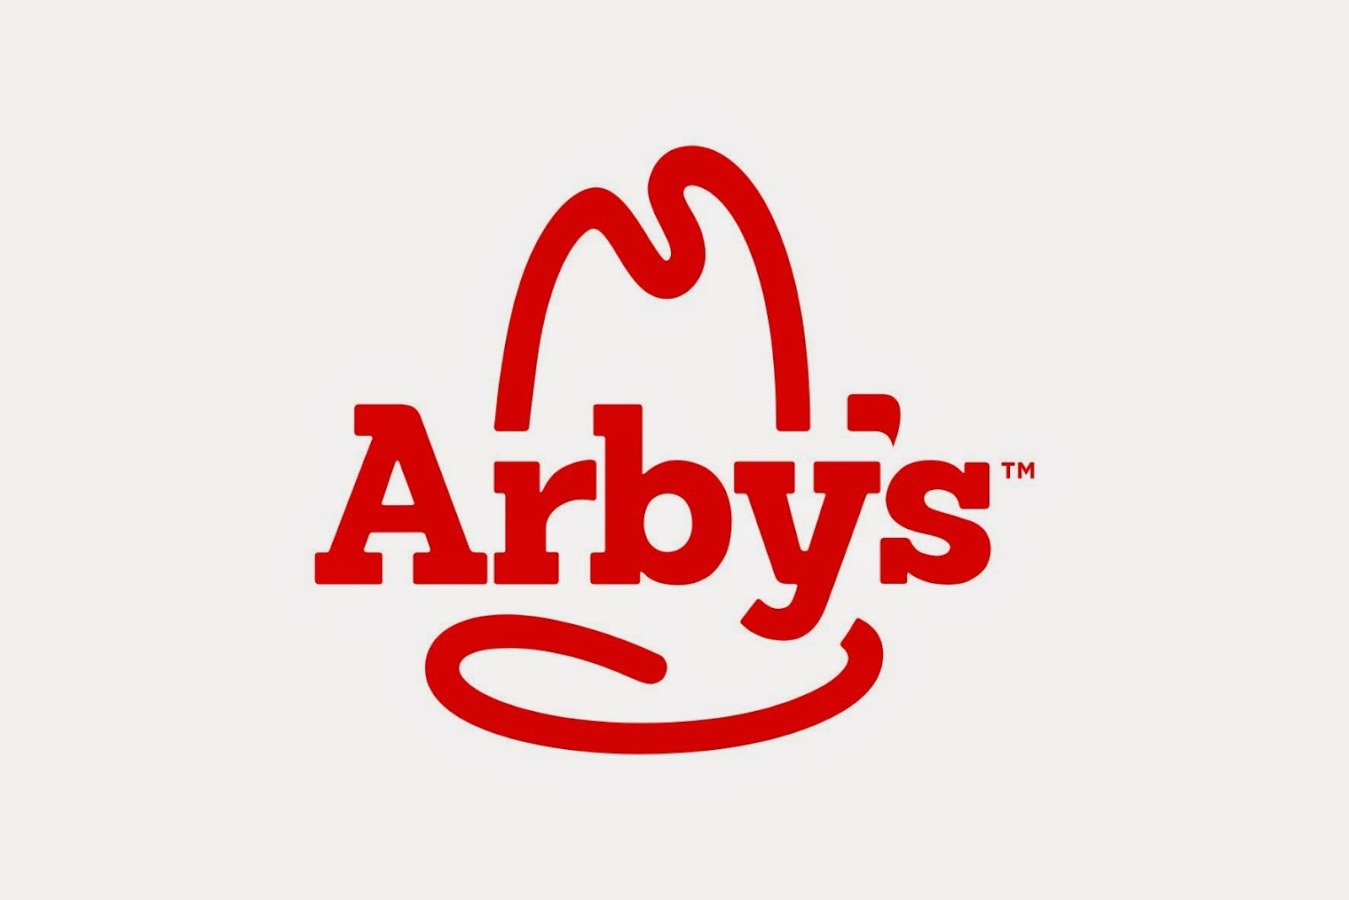 ARBYS $5 INSTANT DELIVERY